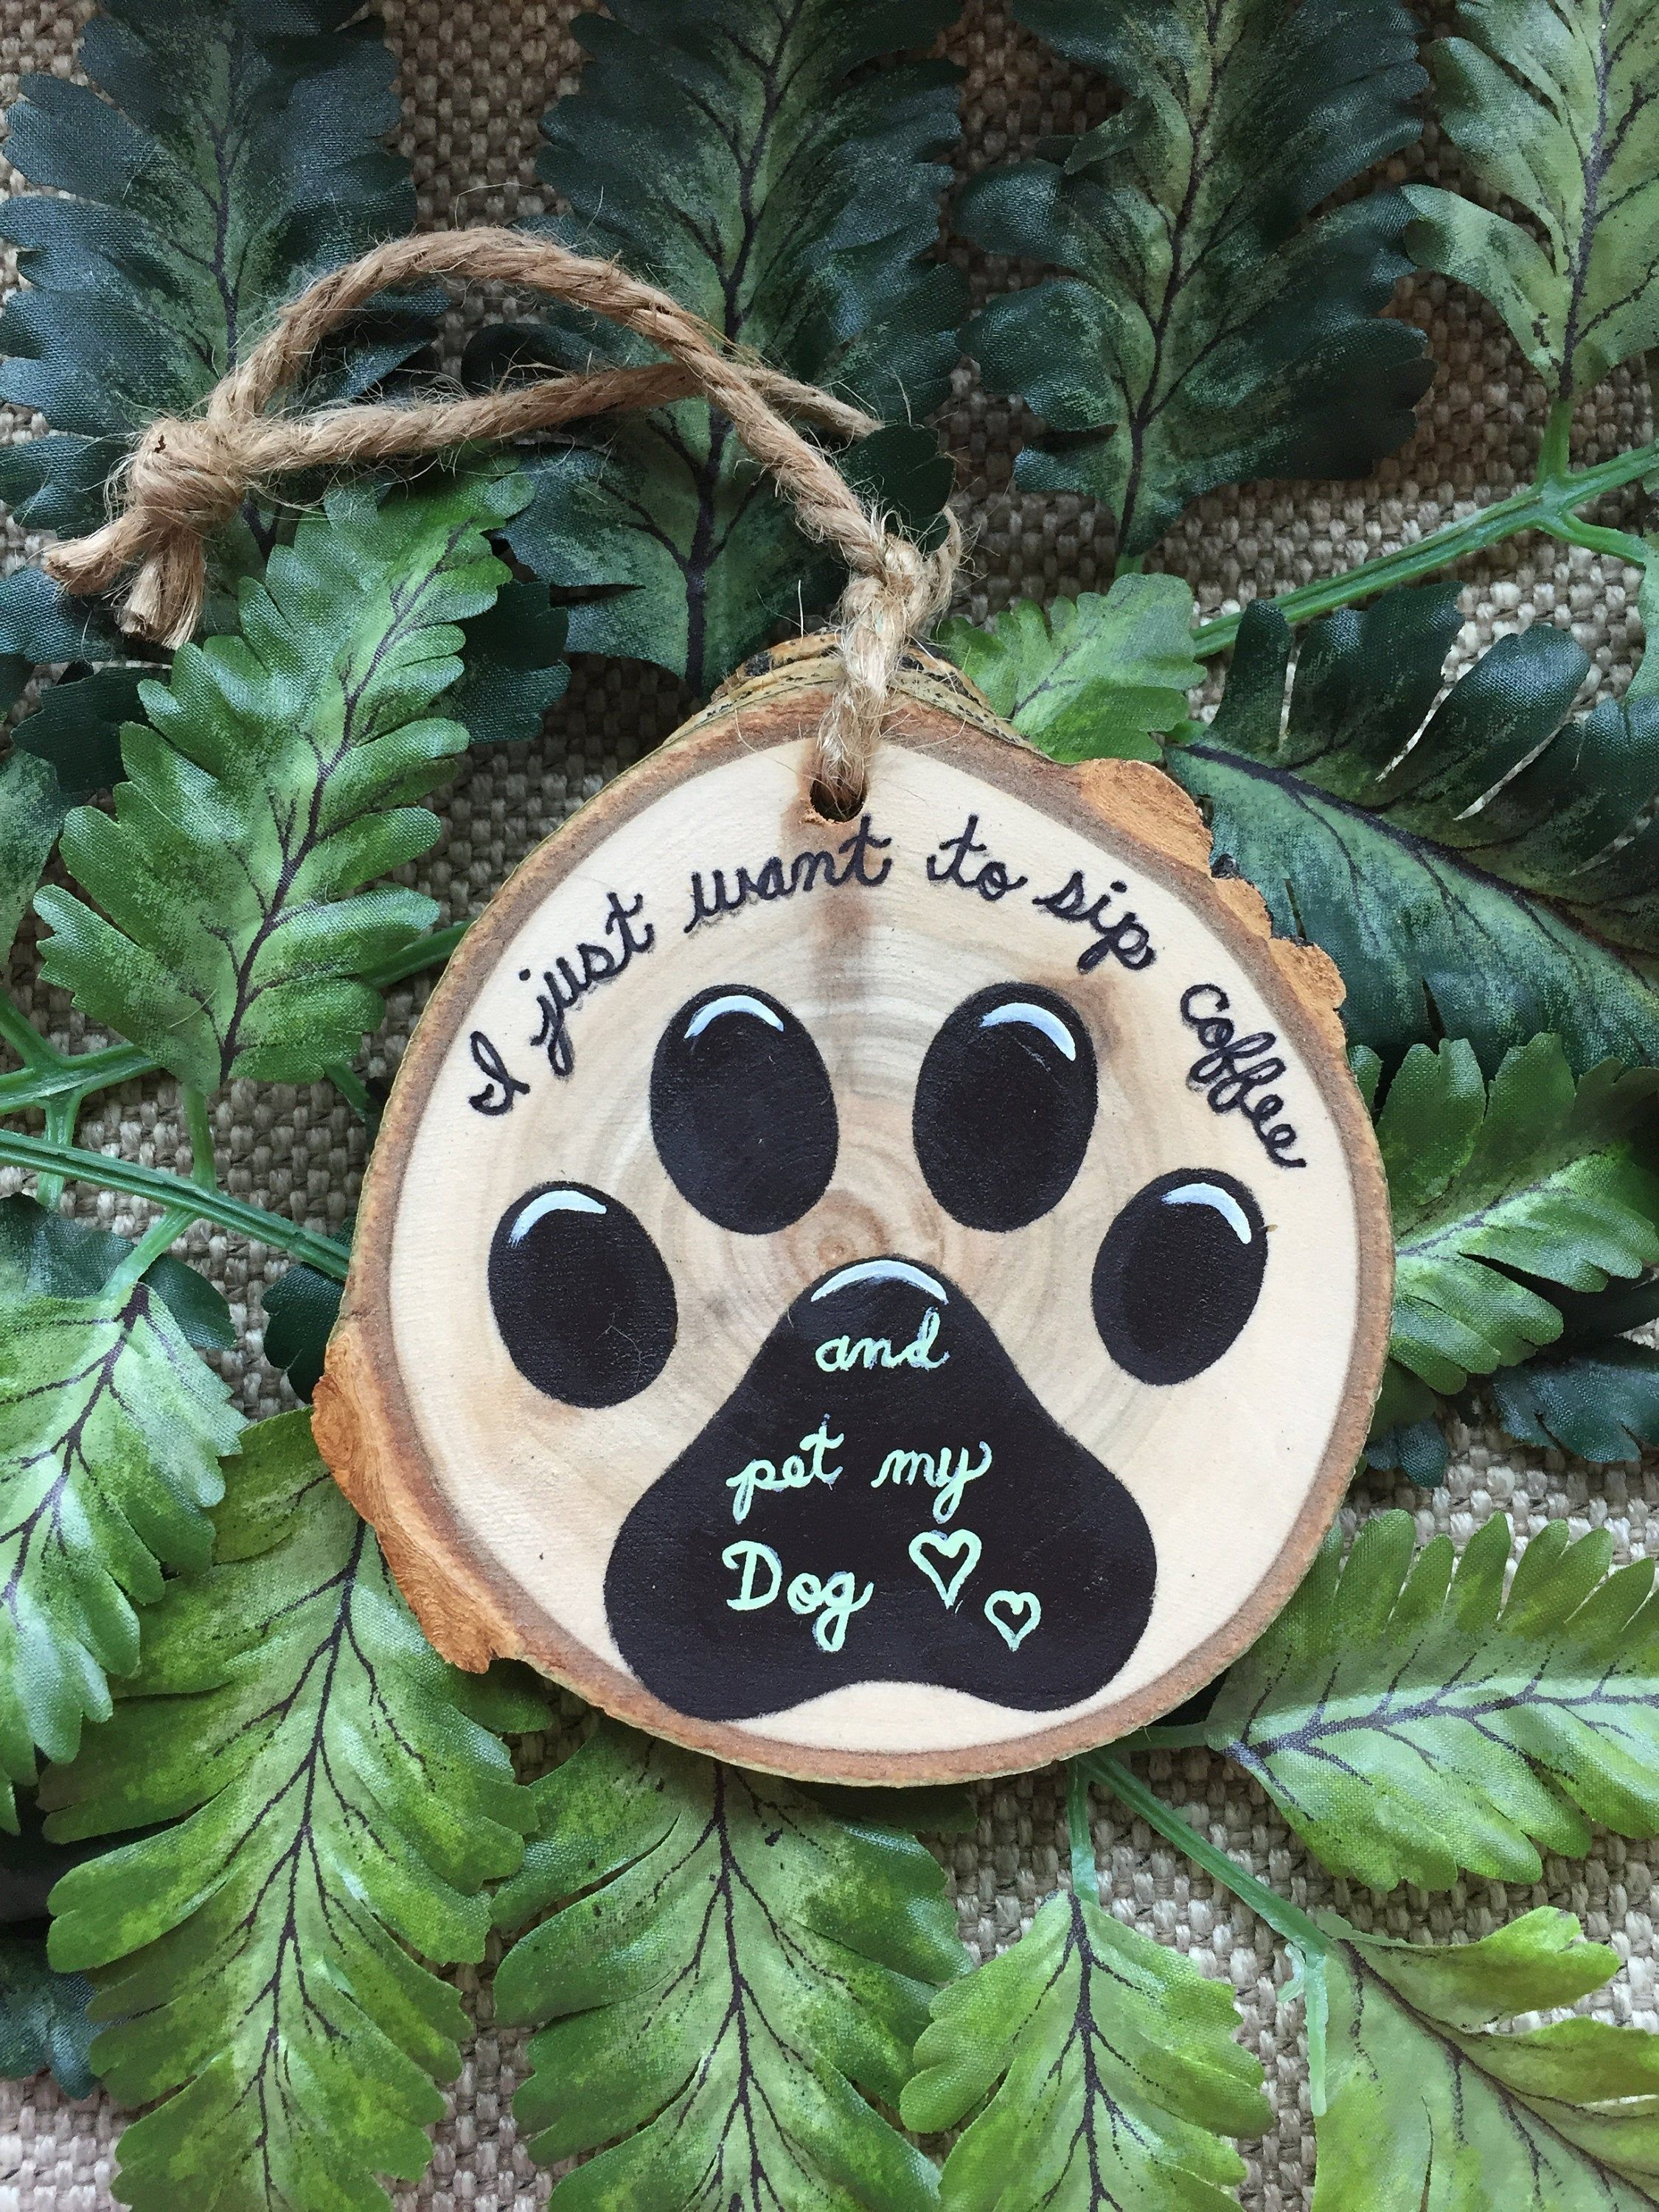 Paw Print Ornament Sip Coffee And Pet My Dog Dog Lover Gift Etsy Paw Print Ornament Hand Painted Ornaments Paw Ornament